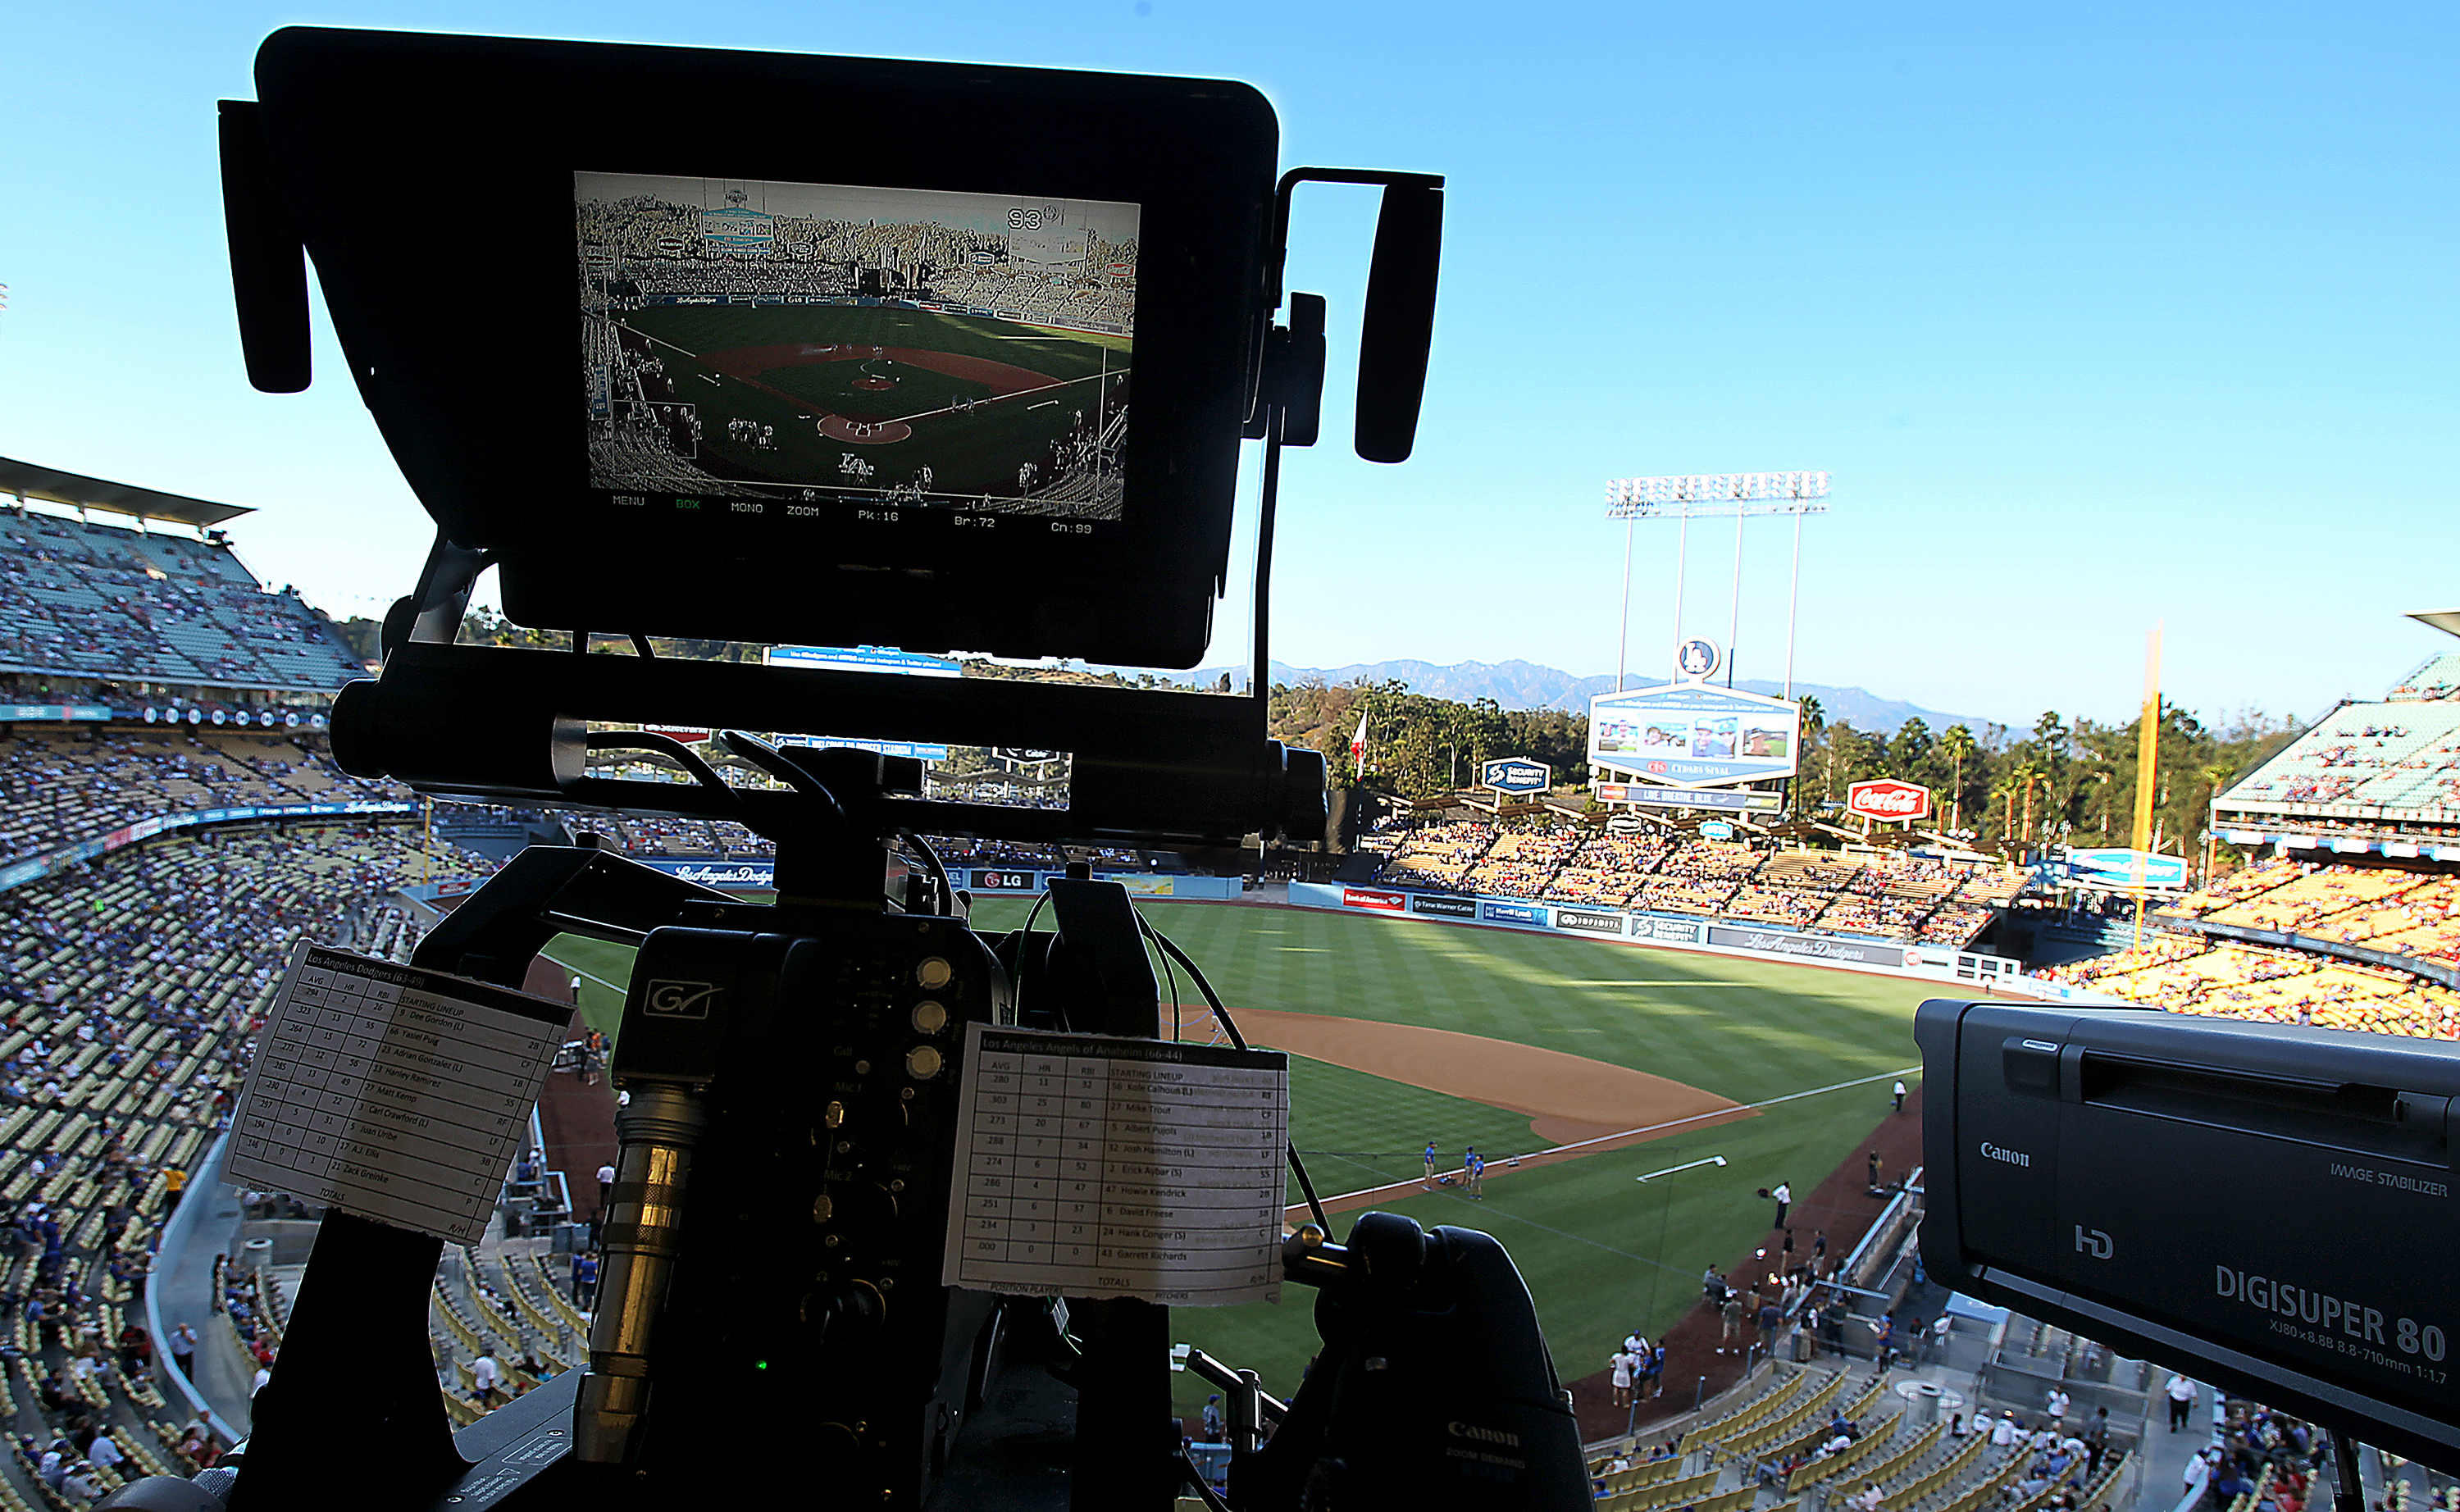 A TV camera shoots the Dodgers, as Sonnenburg often does.